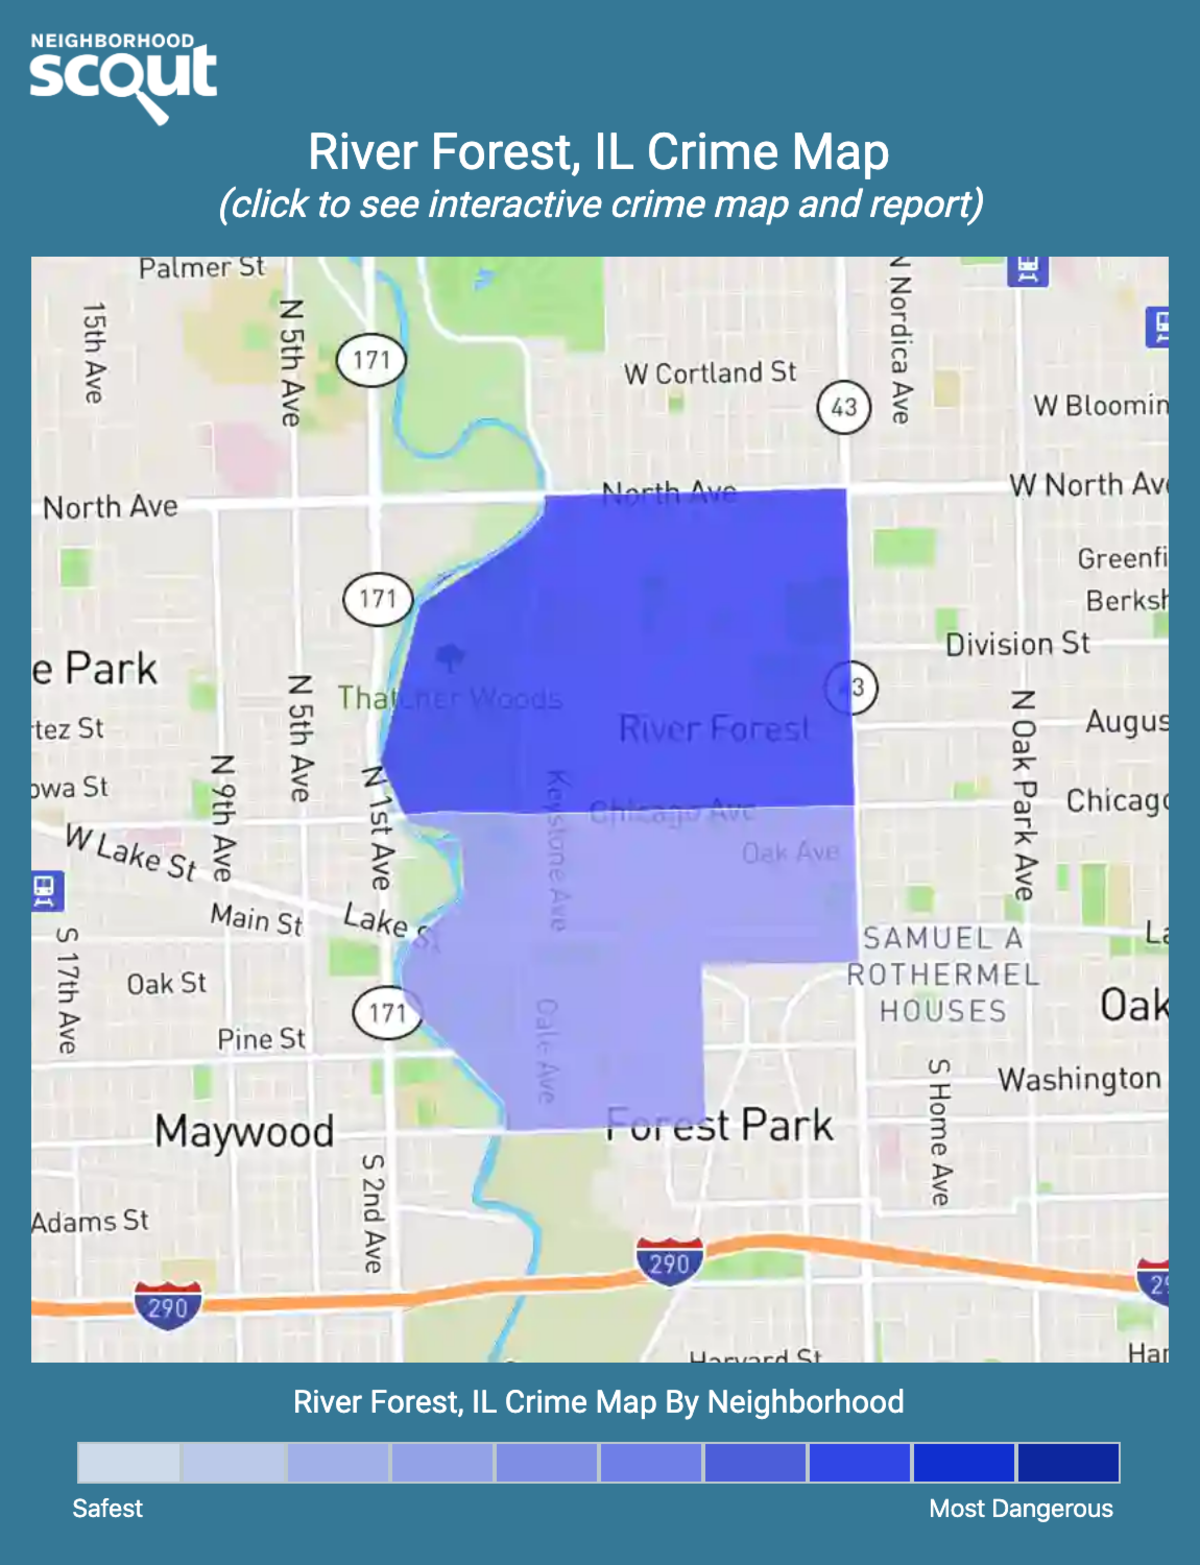 River Forest, Illinois crime map